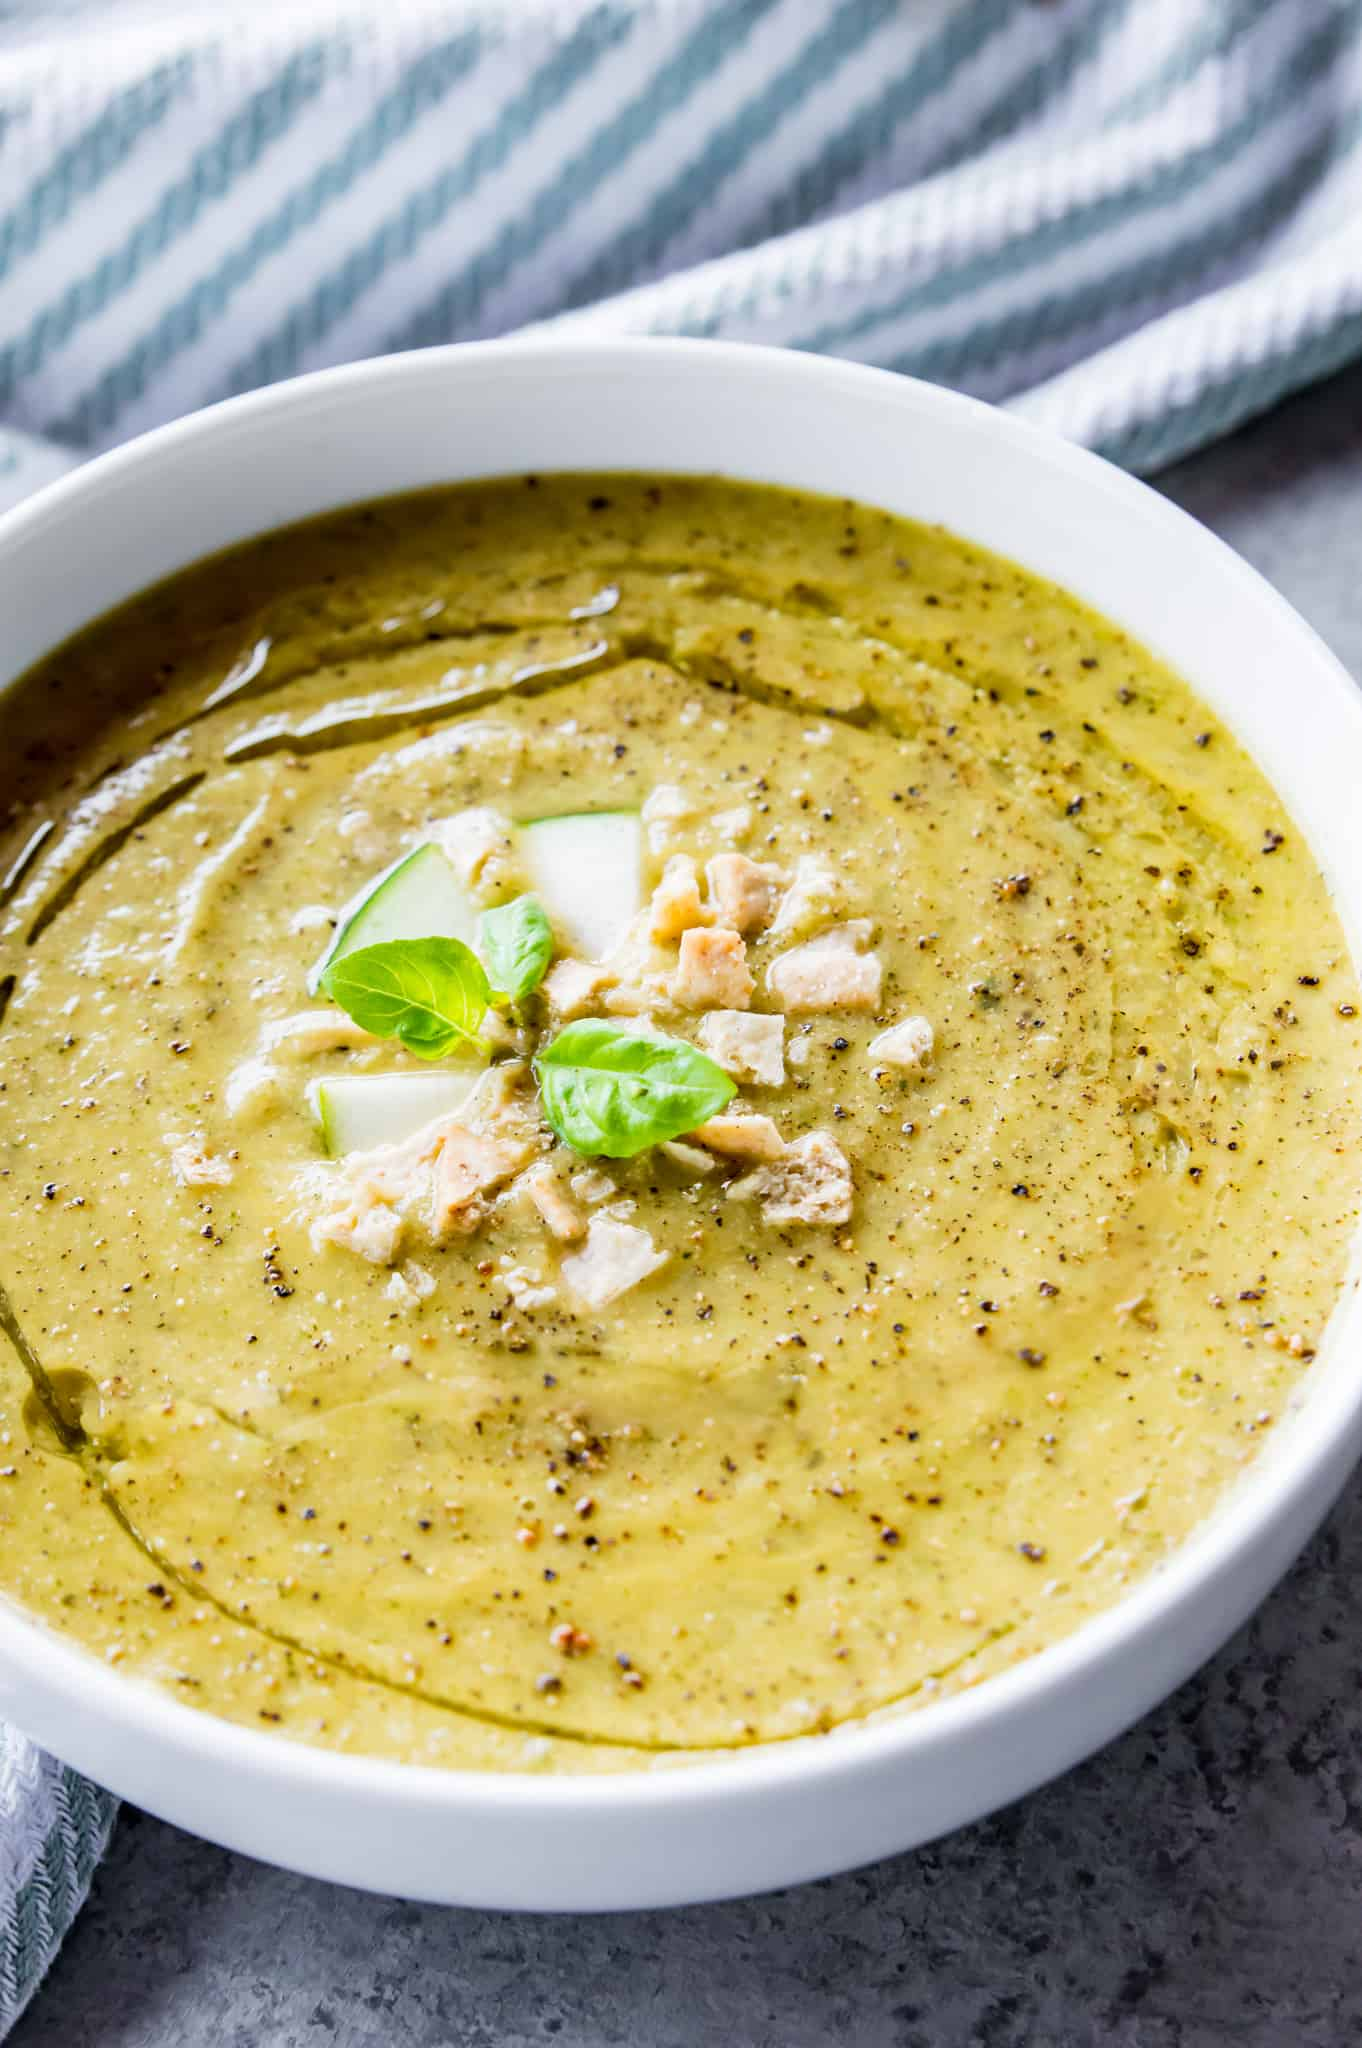 Vegan Zucchini Soup Recipe | A bowl of vegan zucchini soup topped with crushed crackers and fresh basil